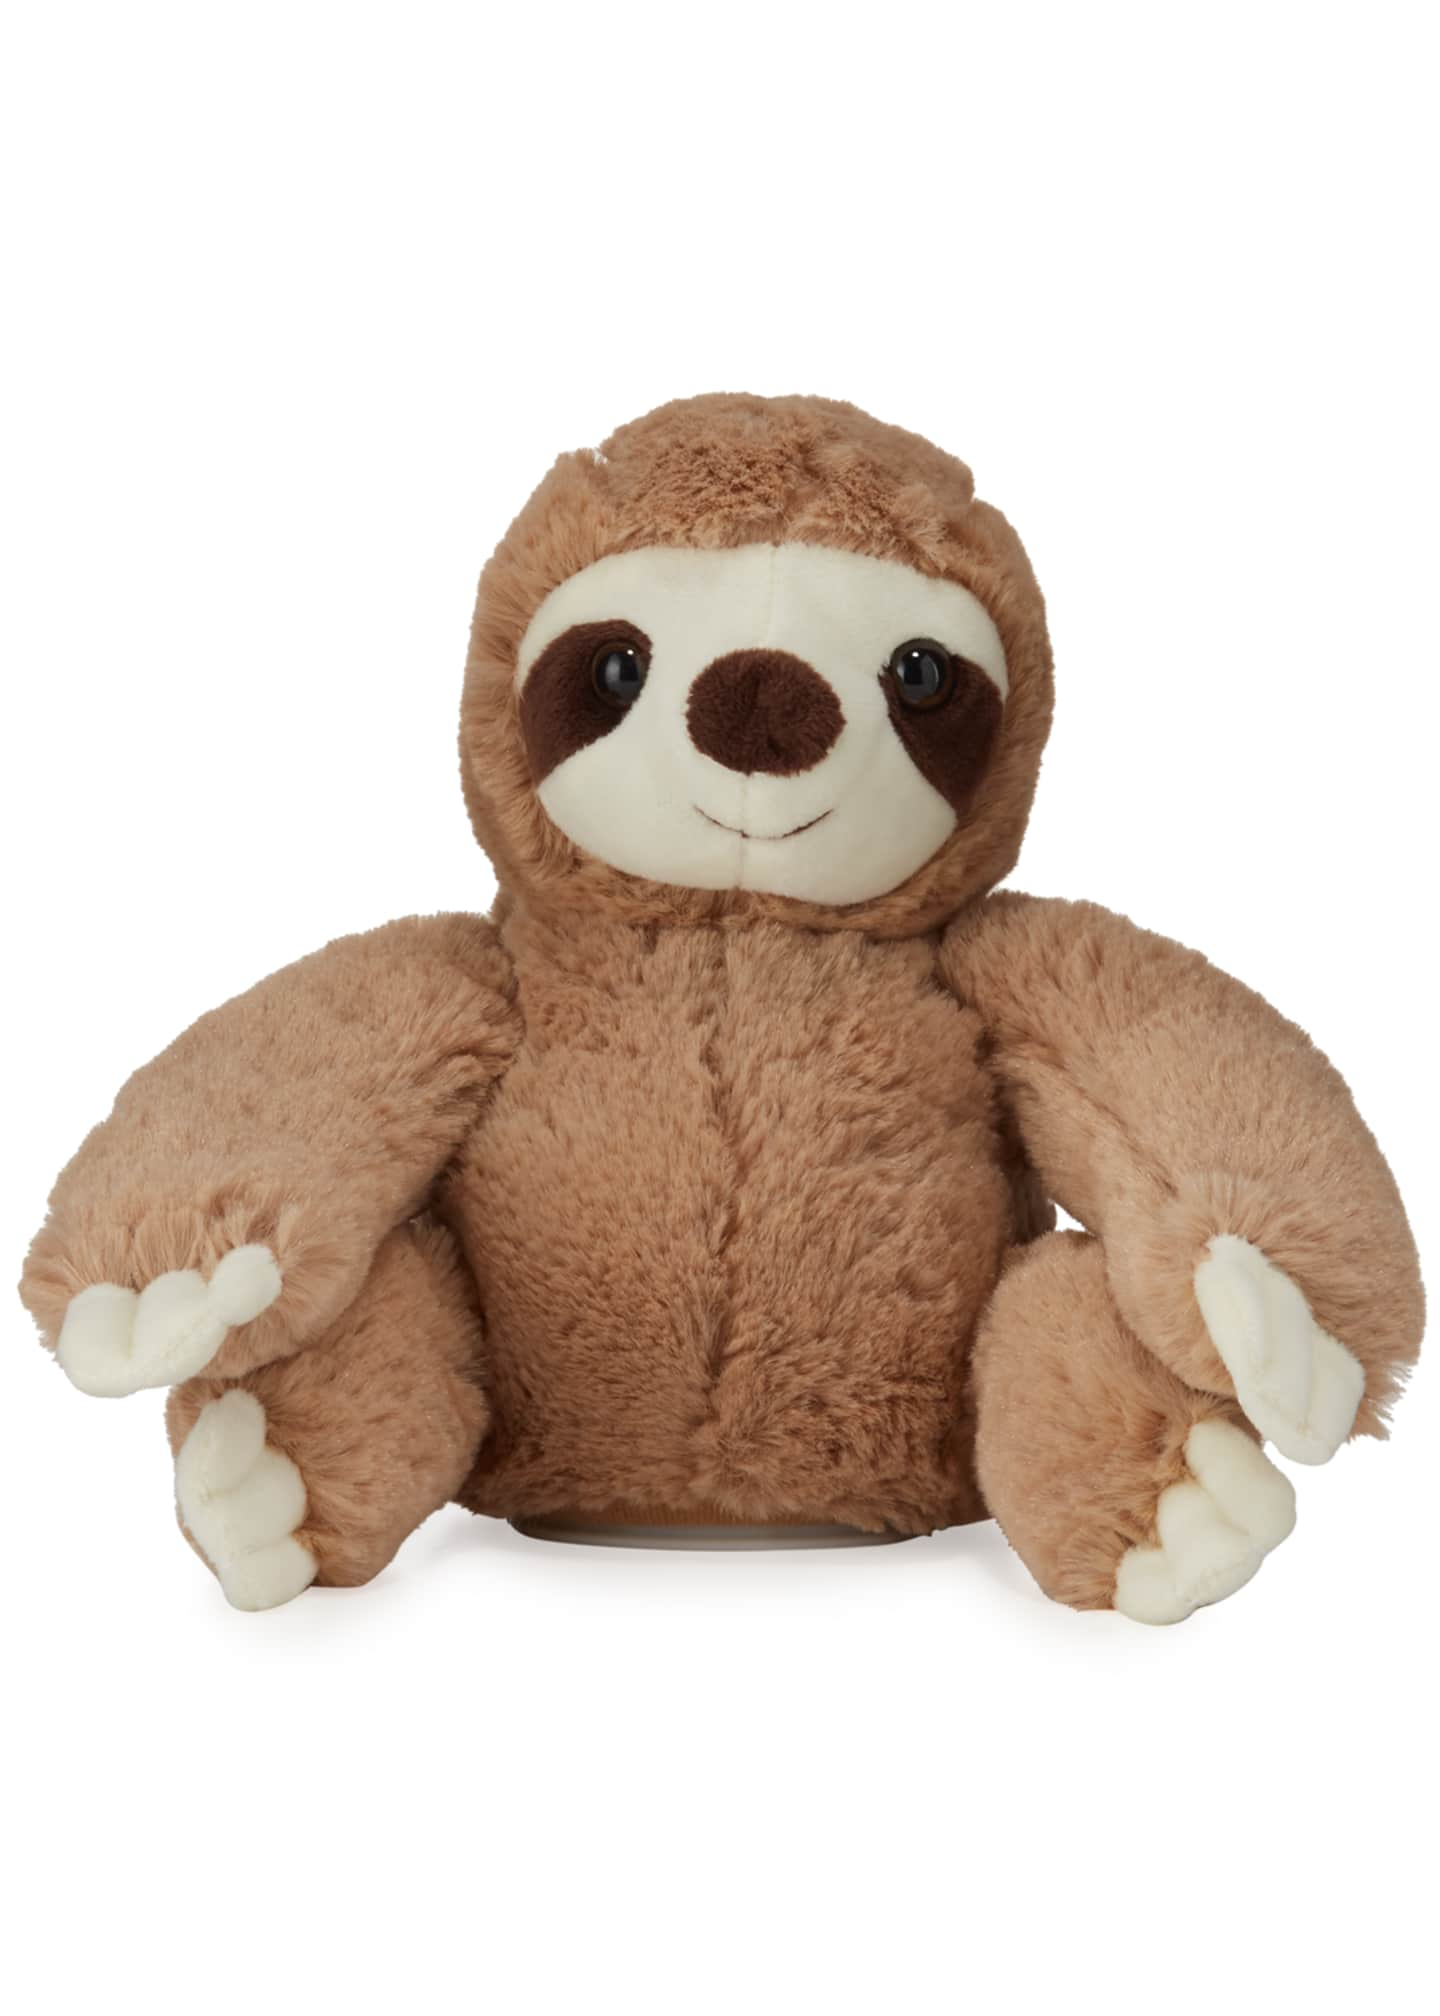 Two's Company Speak and Repeat Sloth Plush Toy